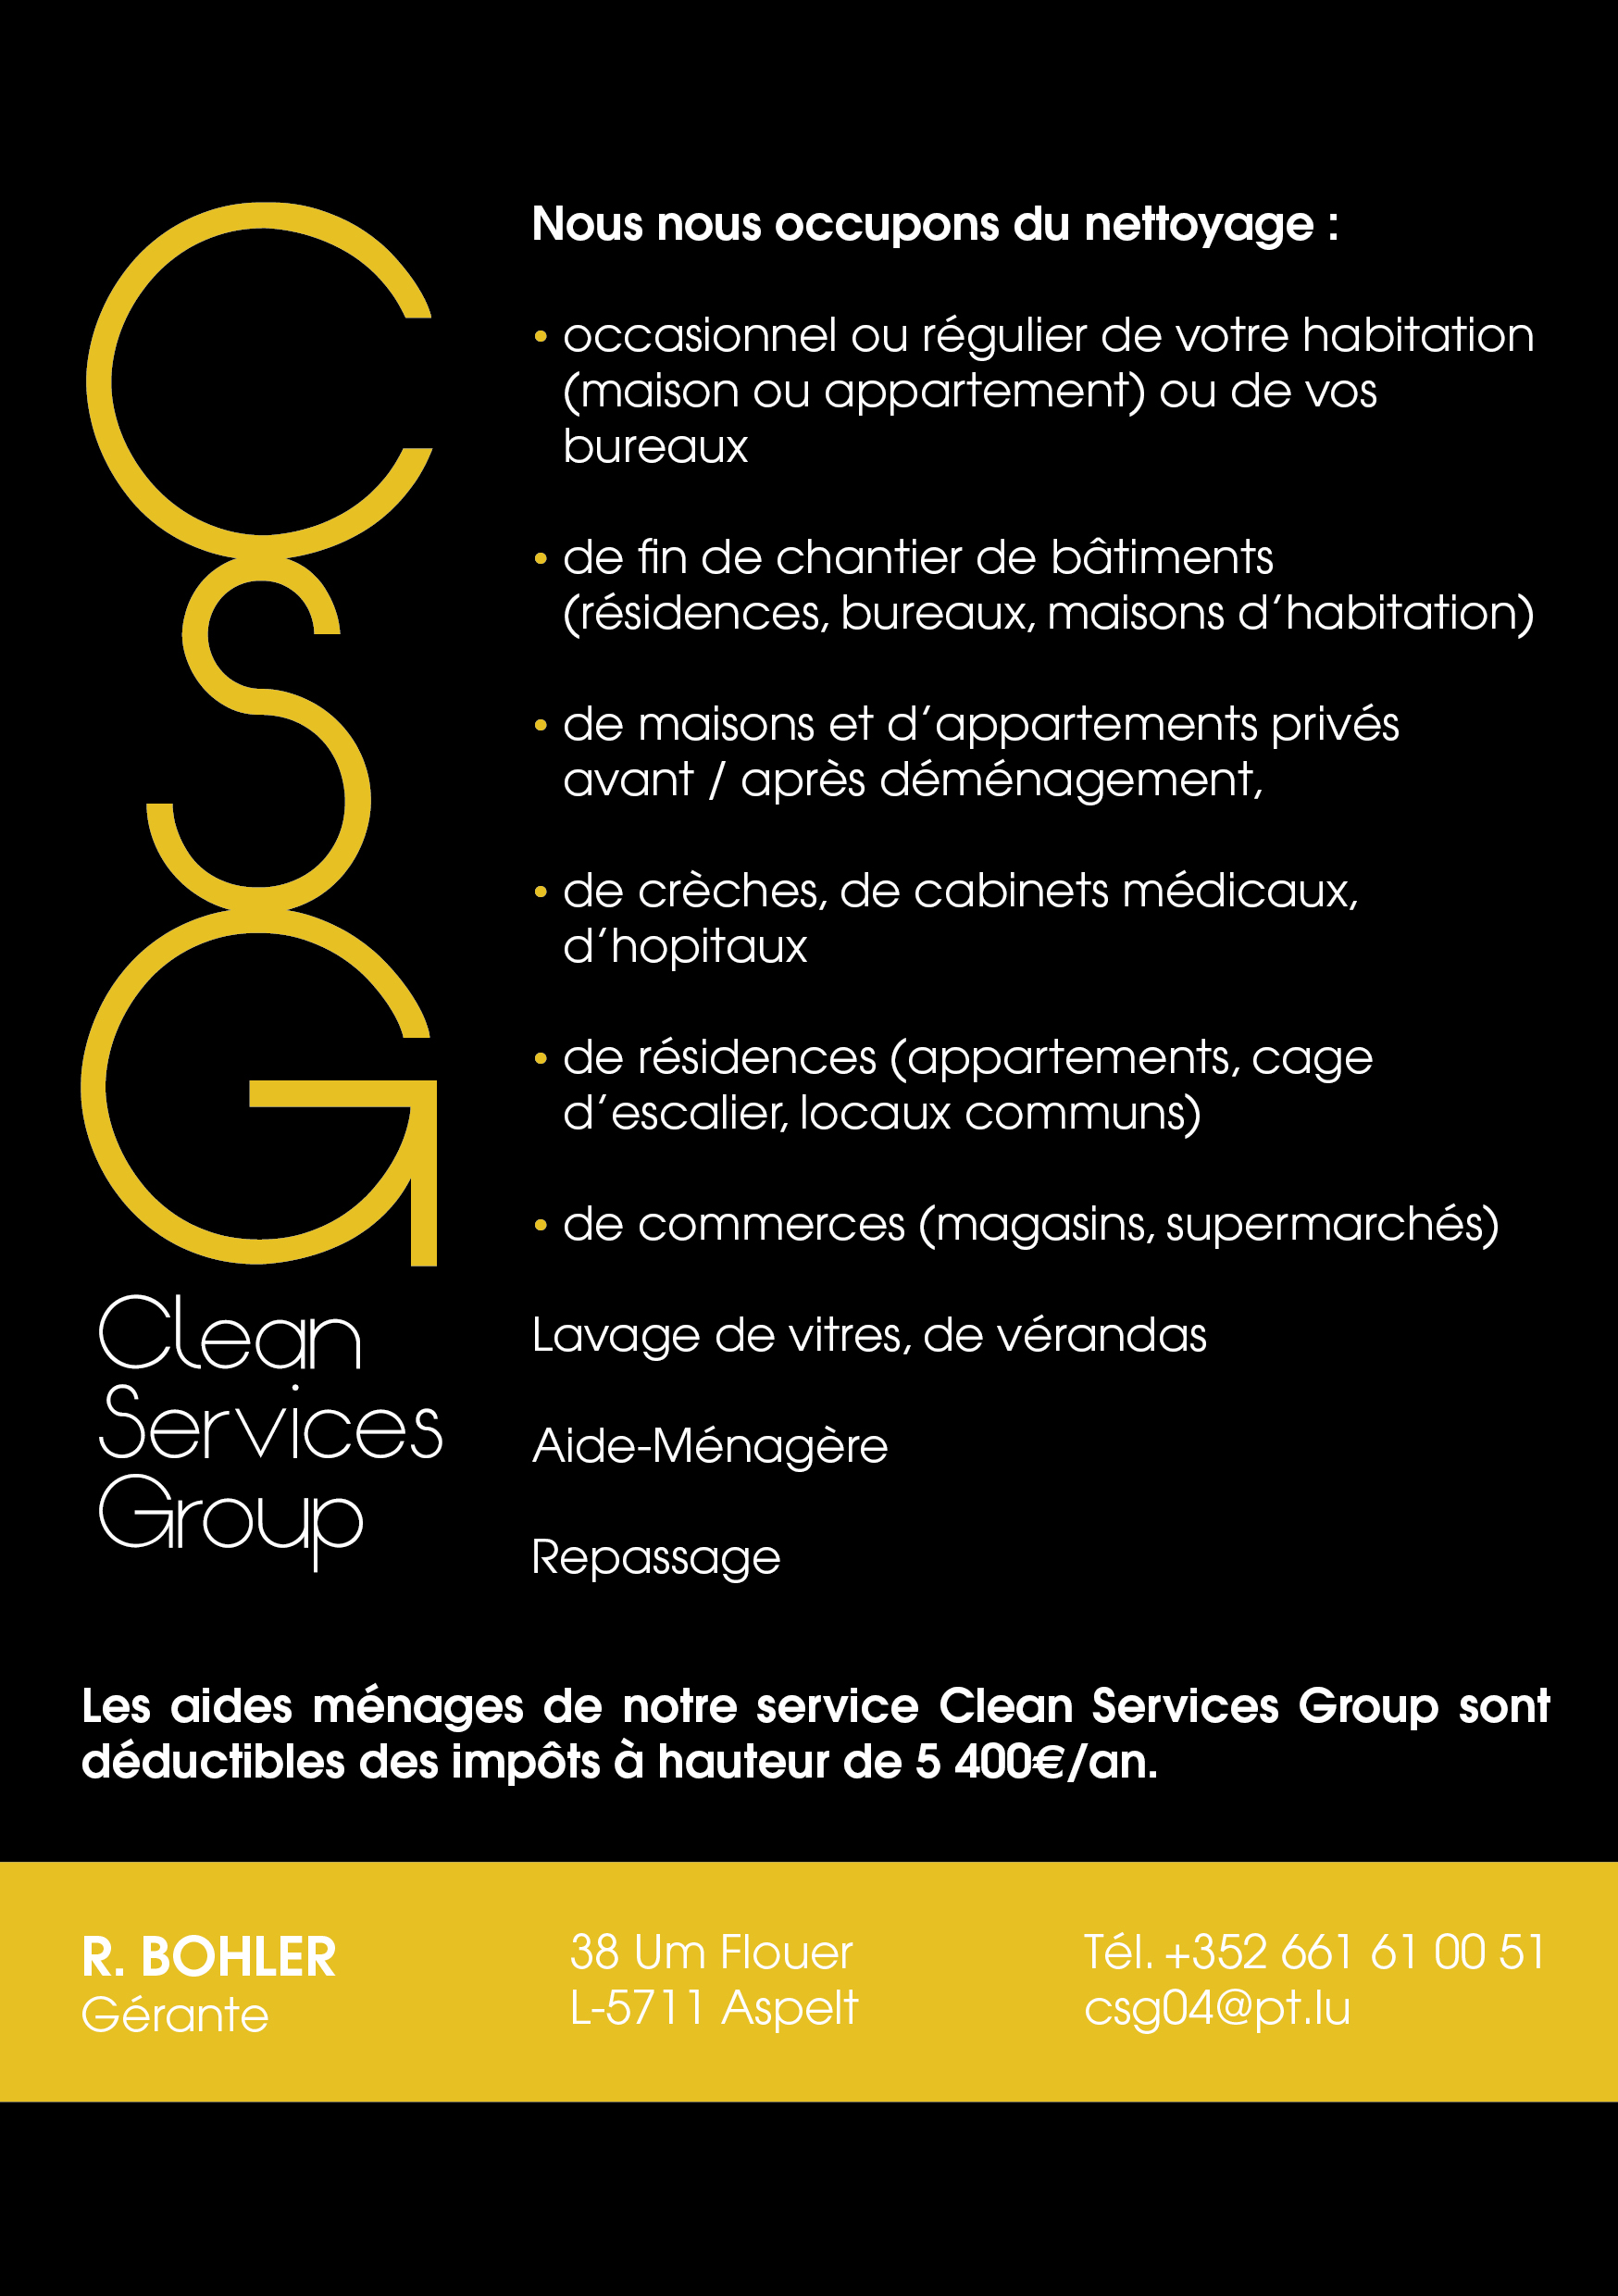 C.S. G. Services Group